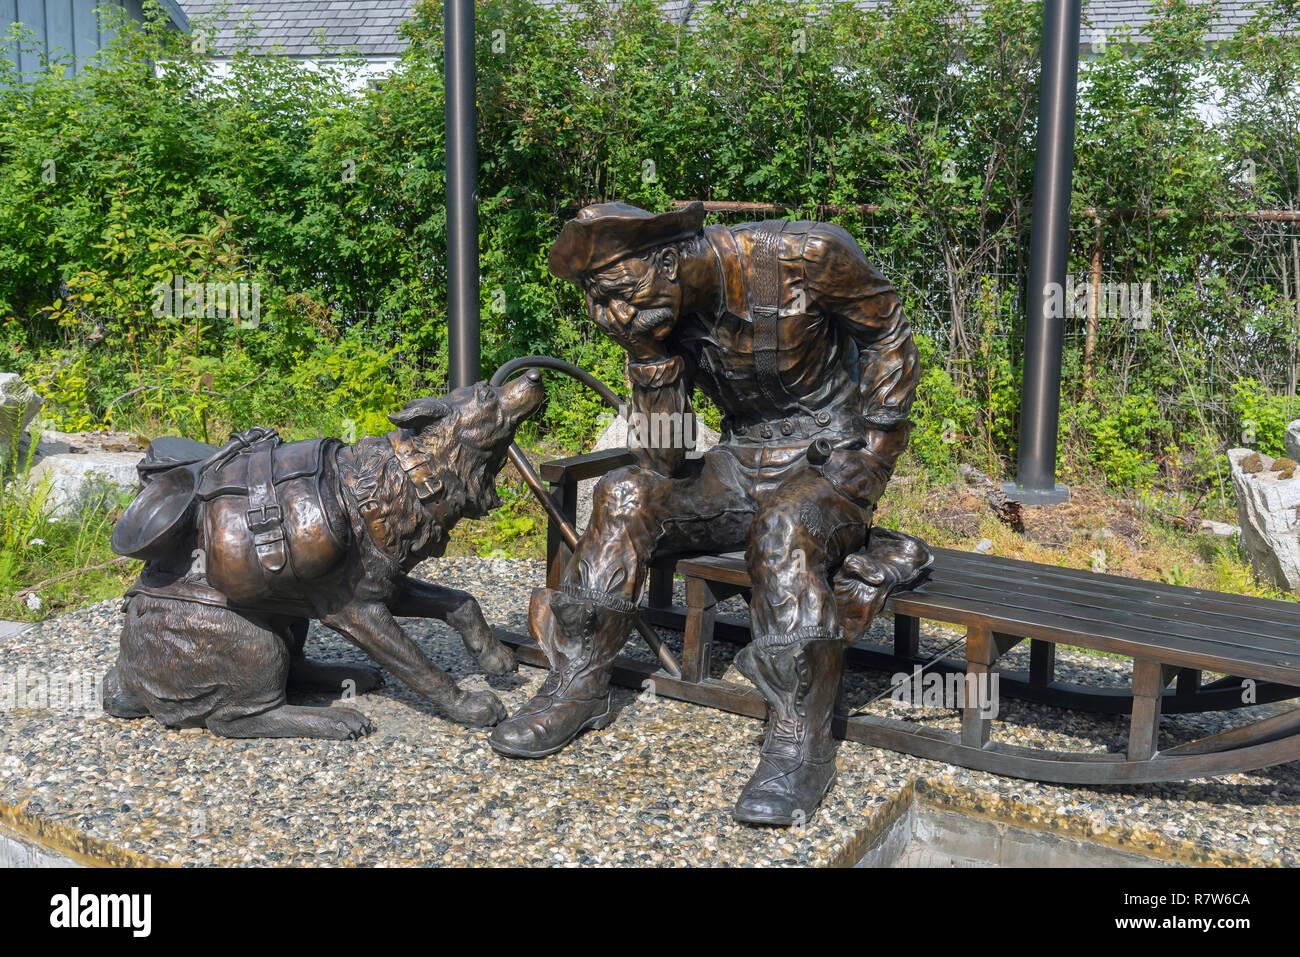 A sculpture of a prospector and his dog near the Alaska Geographic Museum Store, Skagway, Alaska, Klondike Gold Rush National Historical Park, USA - Stock Image